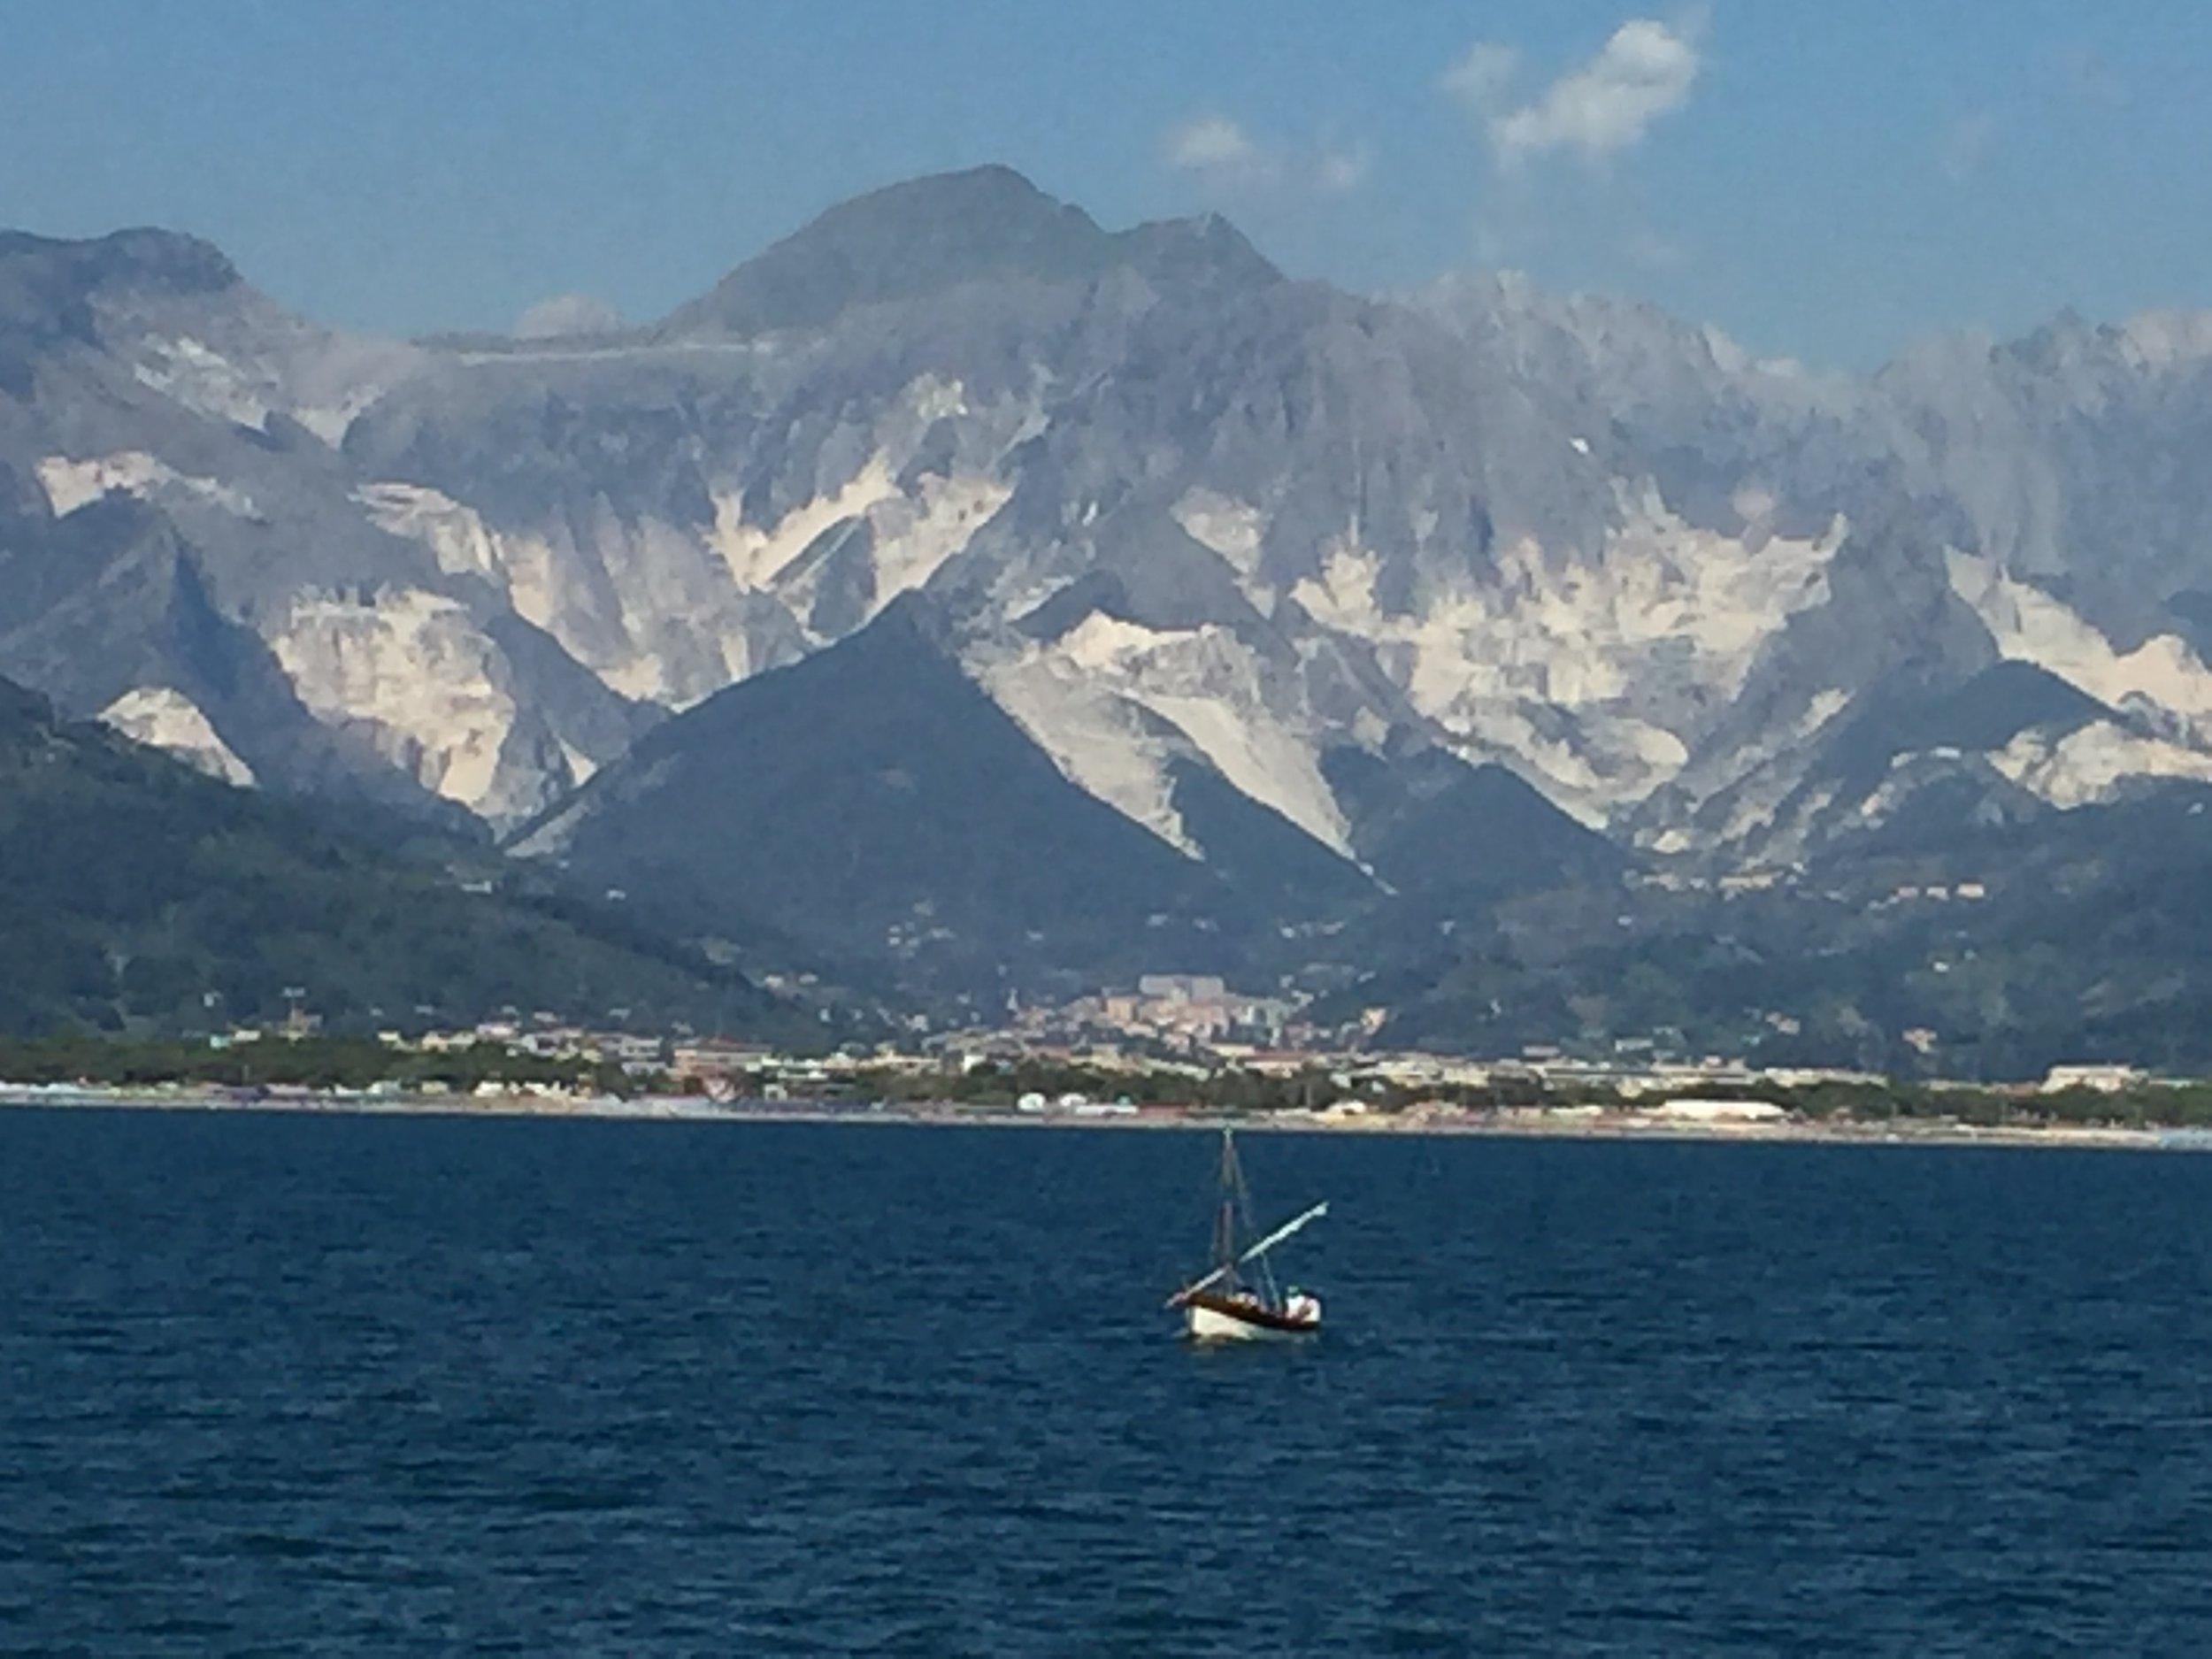 View of the marble mines in Carrara from the passenger ferry between Viareggio and the Cinque Terre